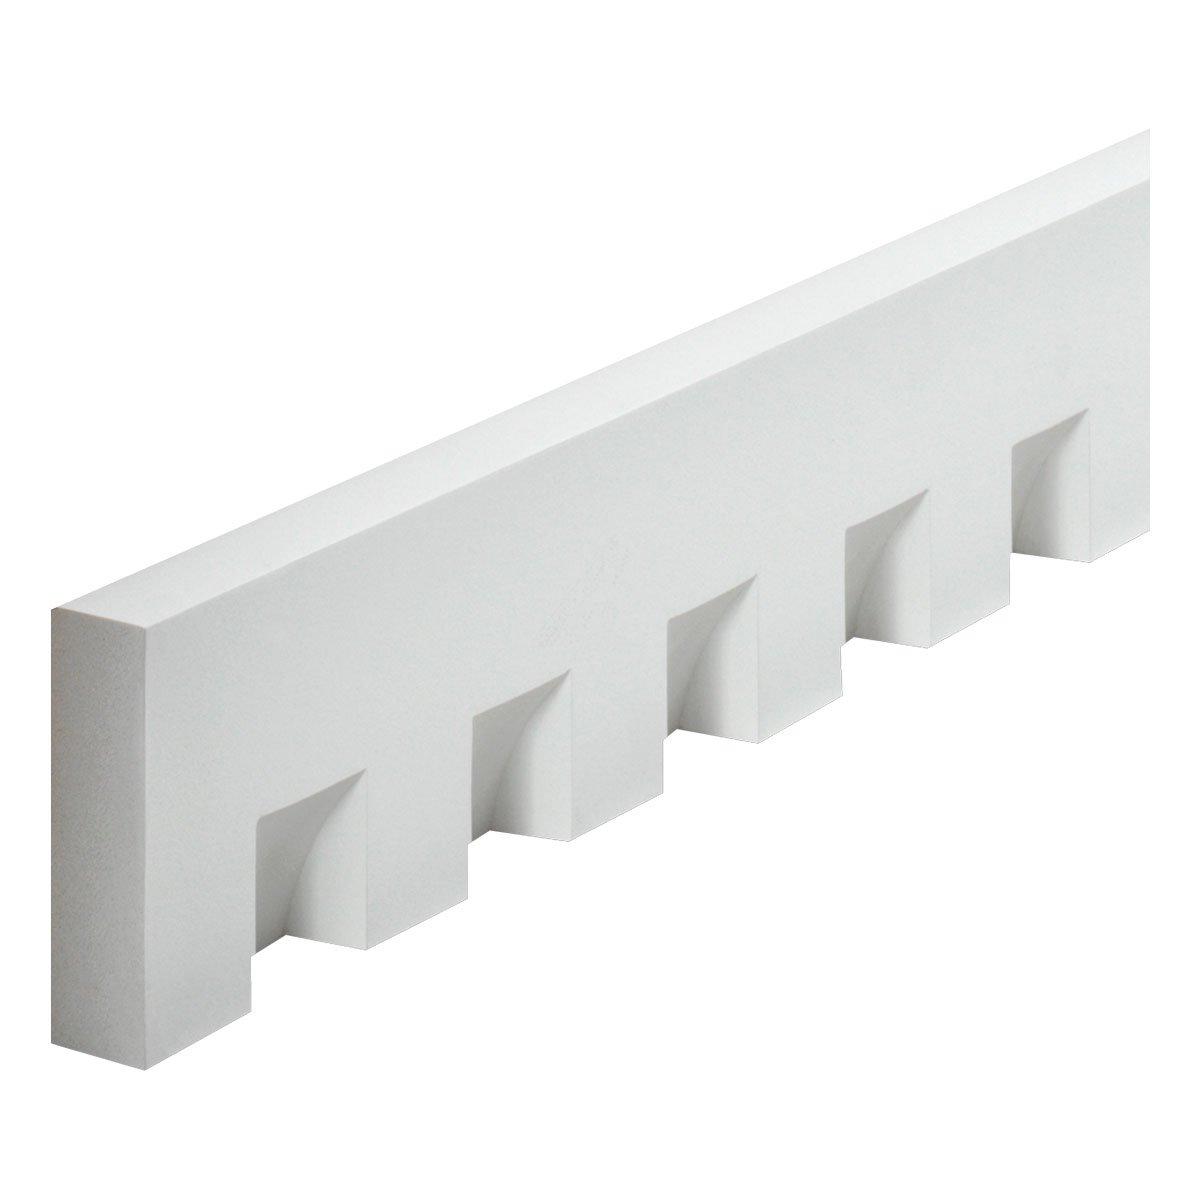 Fypon MLD320-8 5 3/4'' W x 2 1/4'' Tooth/Space x 1 5/8'' P, 8' Length, Classic Dentil Moulding